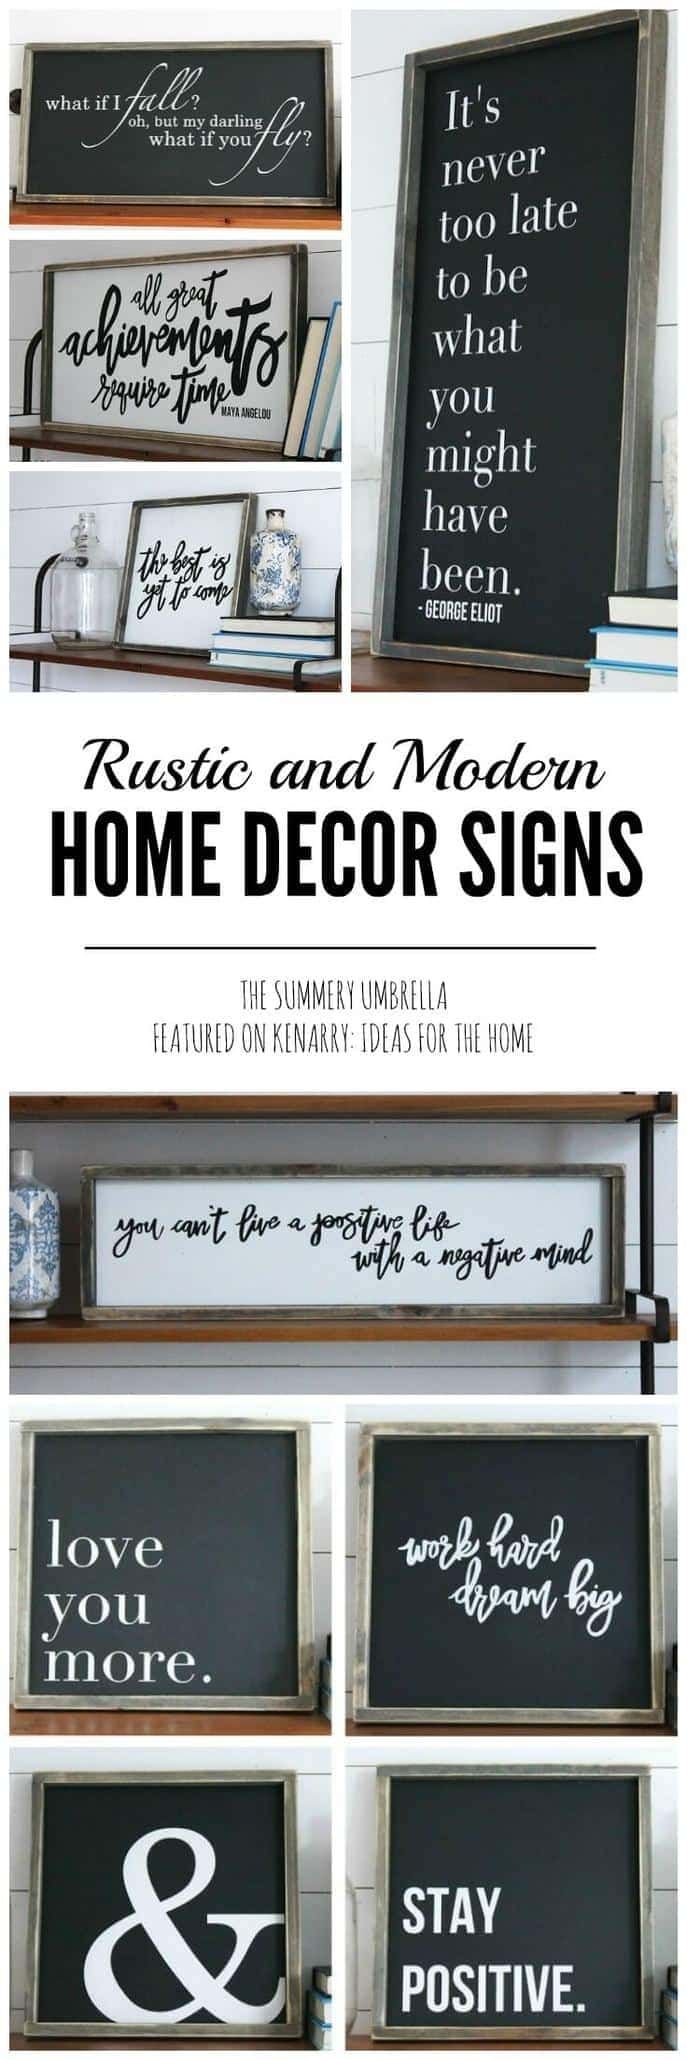 Rustic and Modern Home Decor Signs + Giveaway on Home Wall Decor Signs id=54677